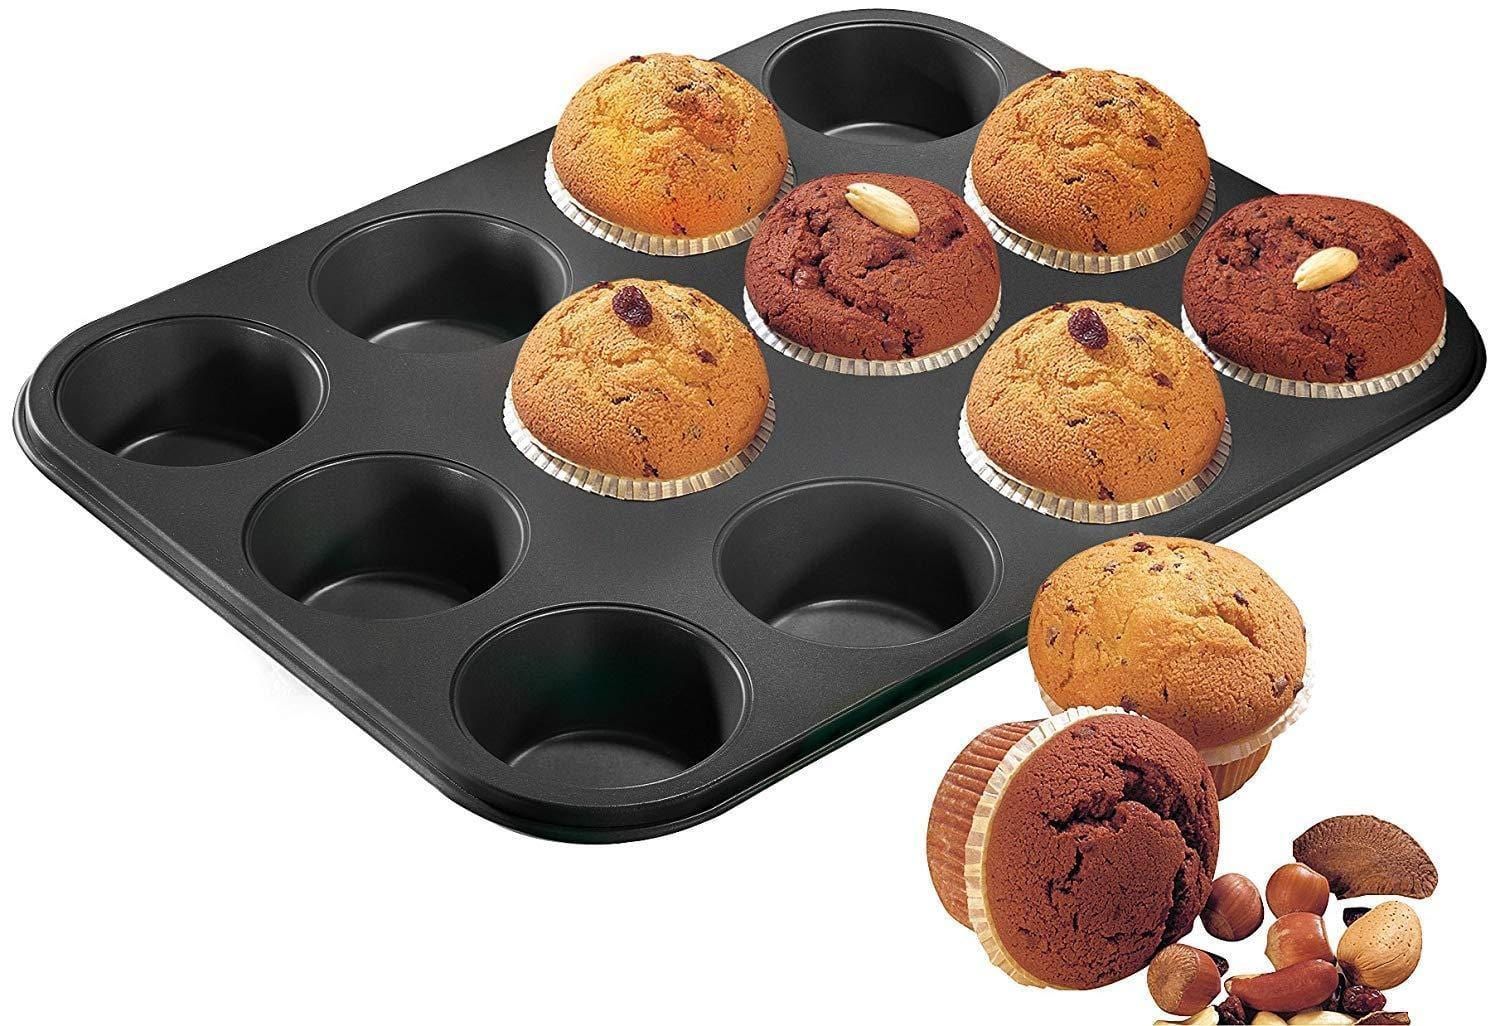 Zenker 6541 muffin tin & cup cakes mold set of 24 oven baking tray - exxab.com